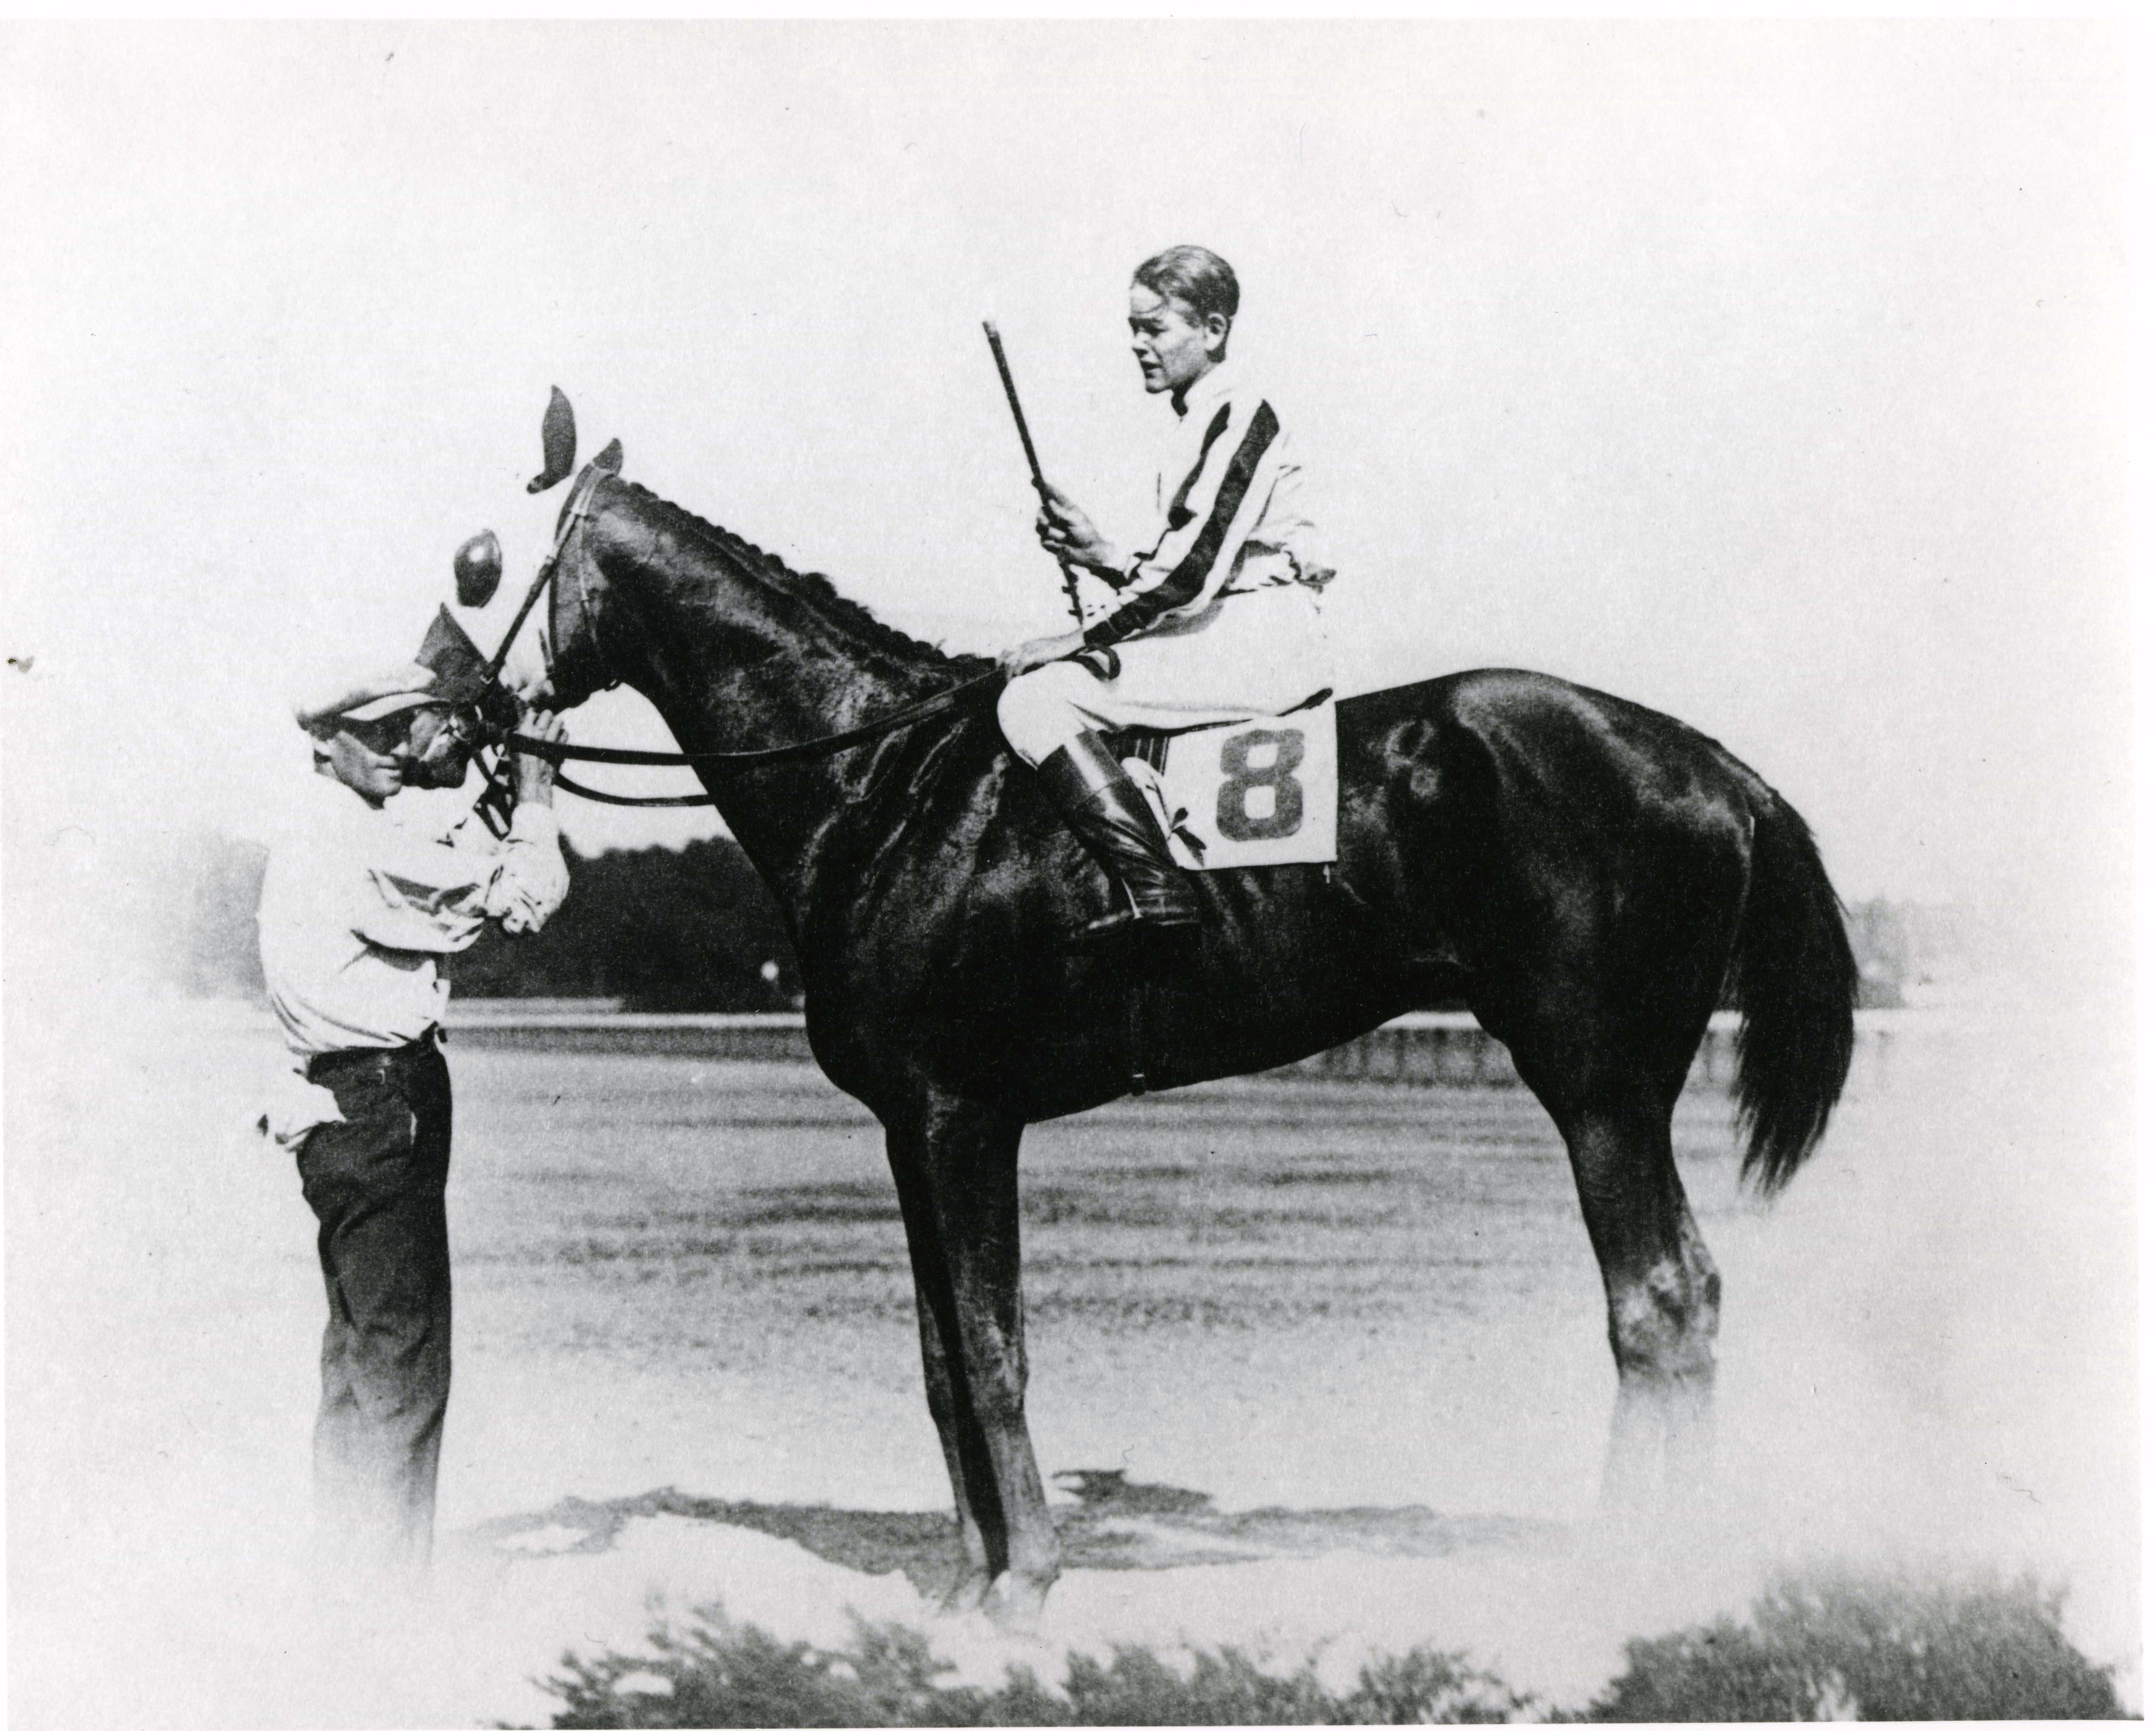 Ivan Parke and Cherry Pie in the winner's circle after winning a race at Saratoga, August 1924 (H. C. Ashby/Museum Collection)